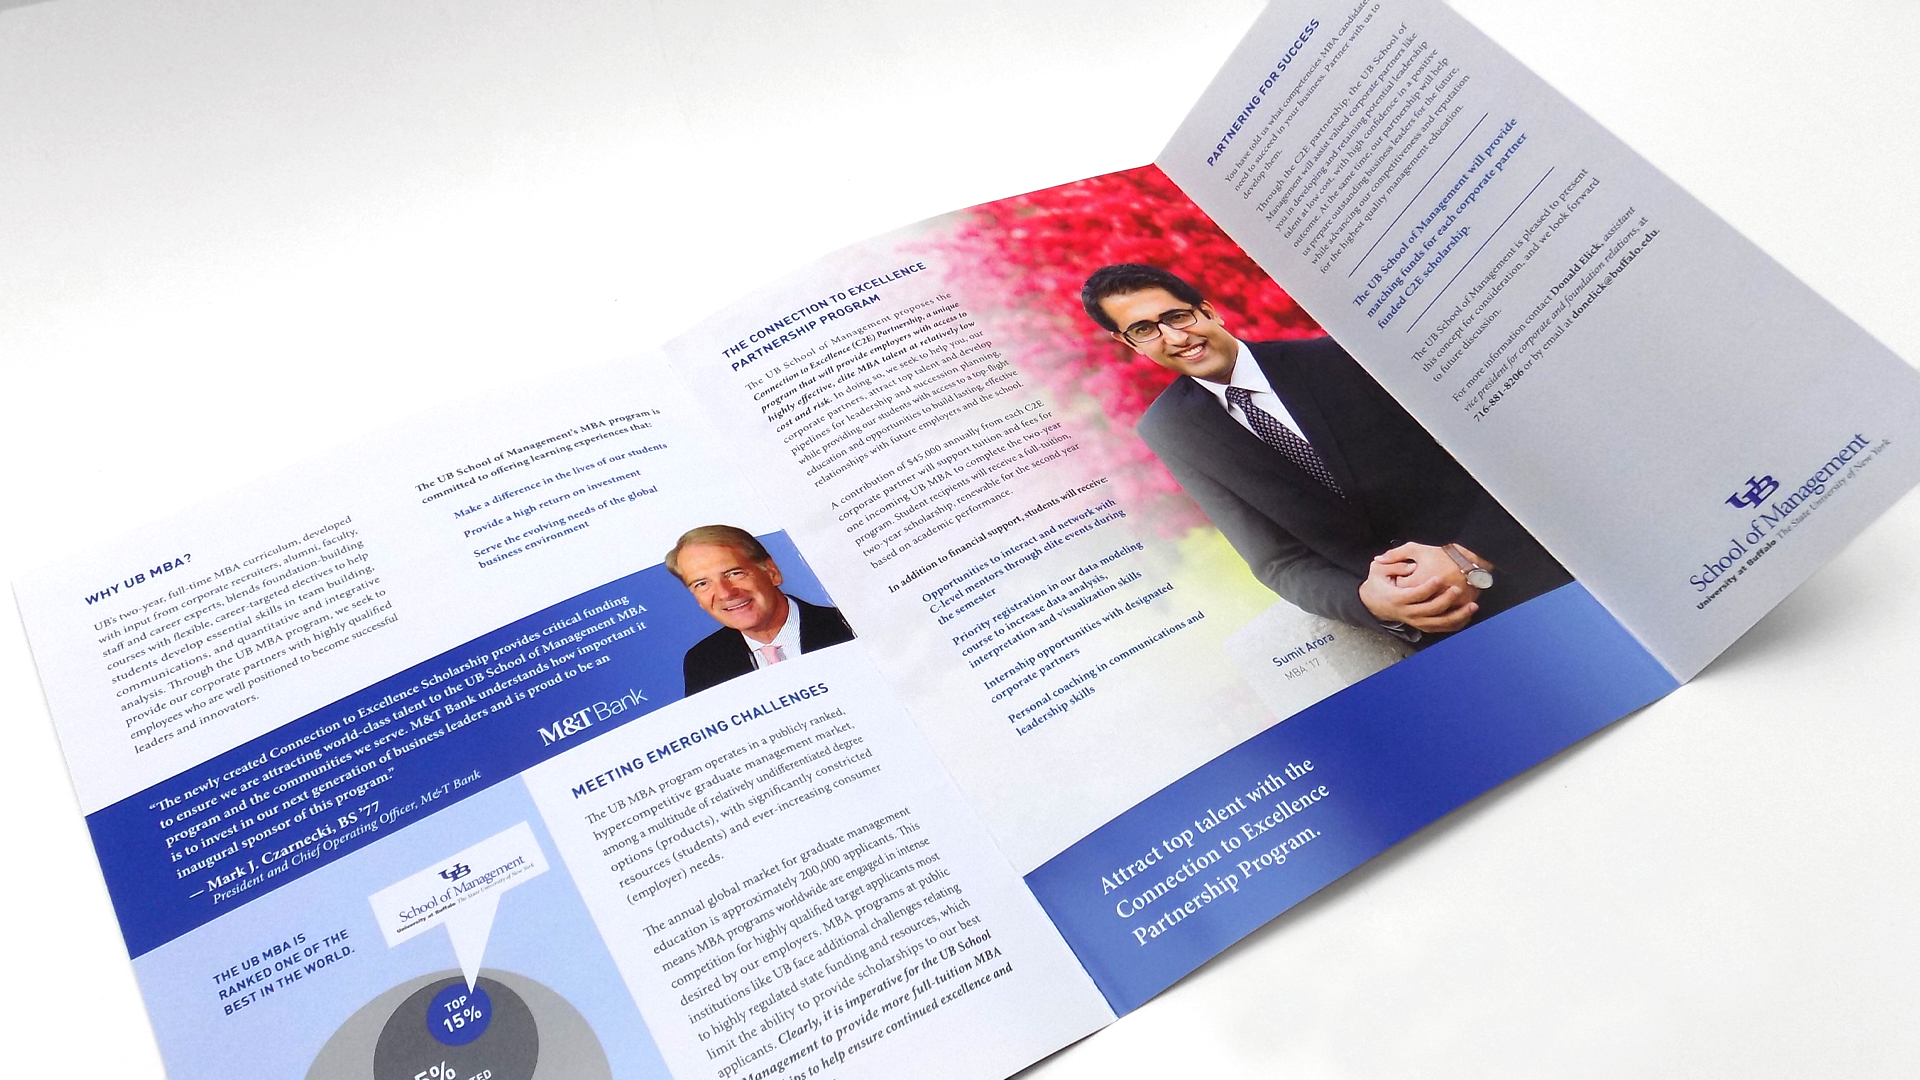 Printed marketing pieces for a university business program